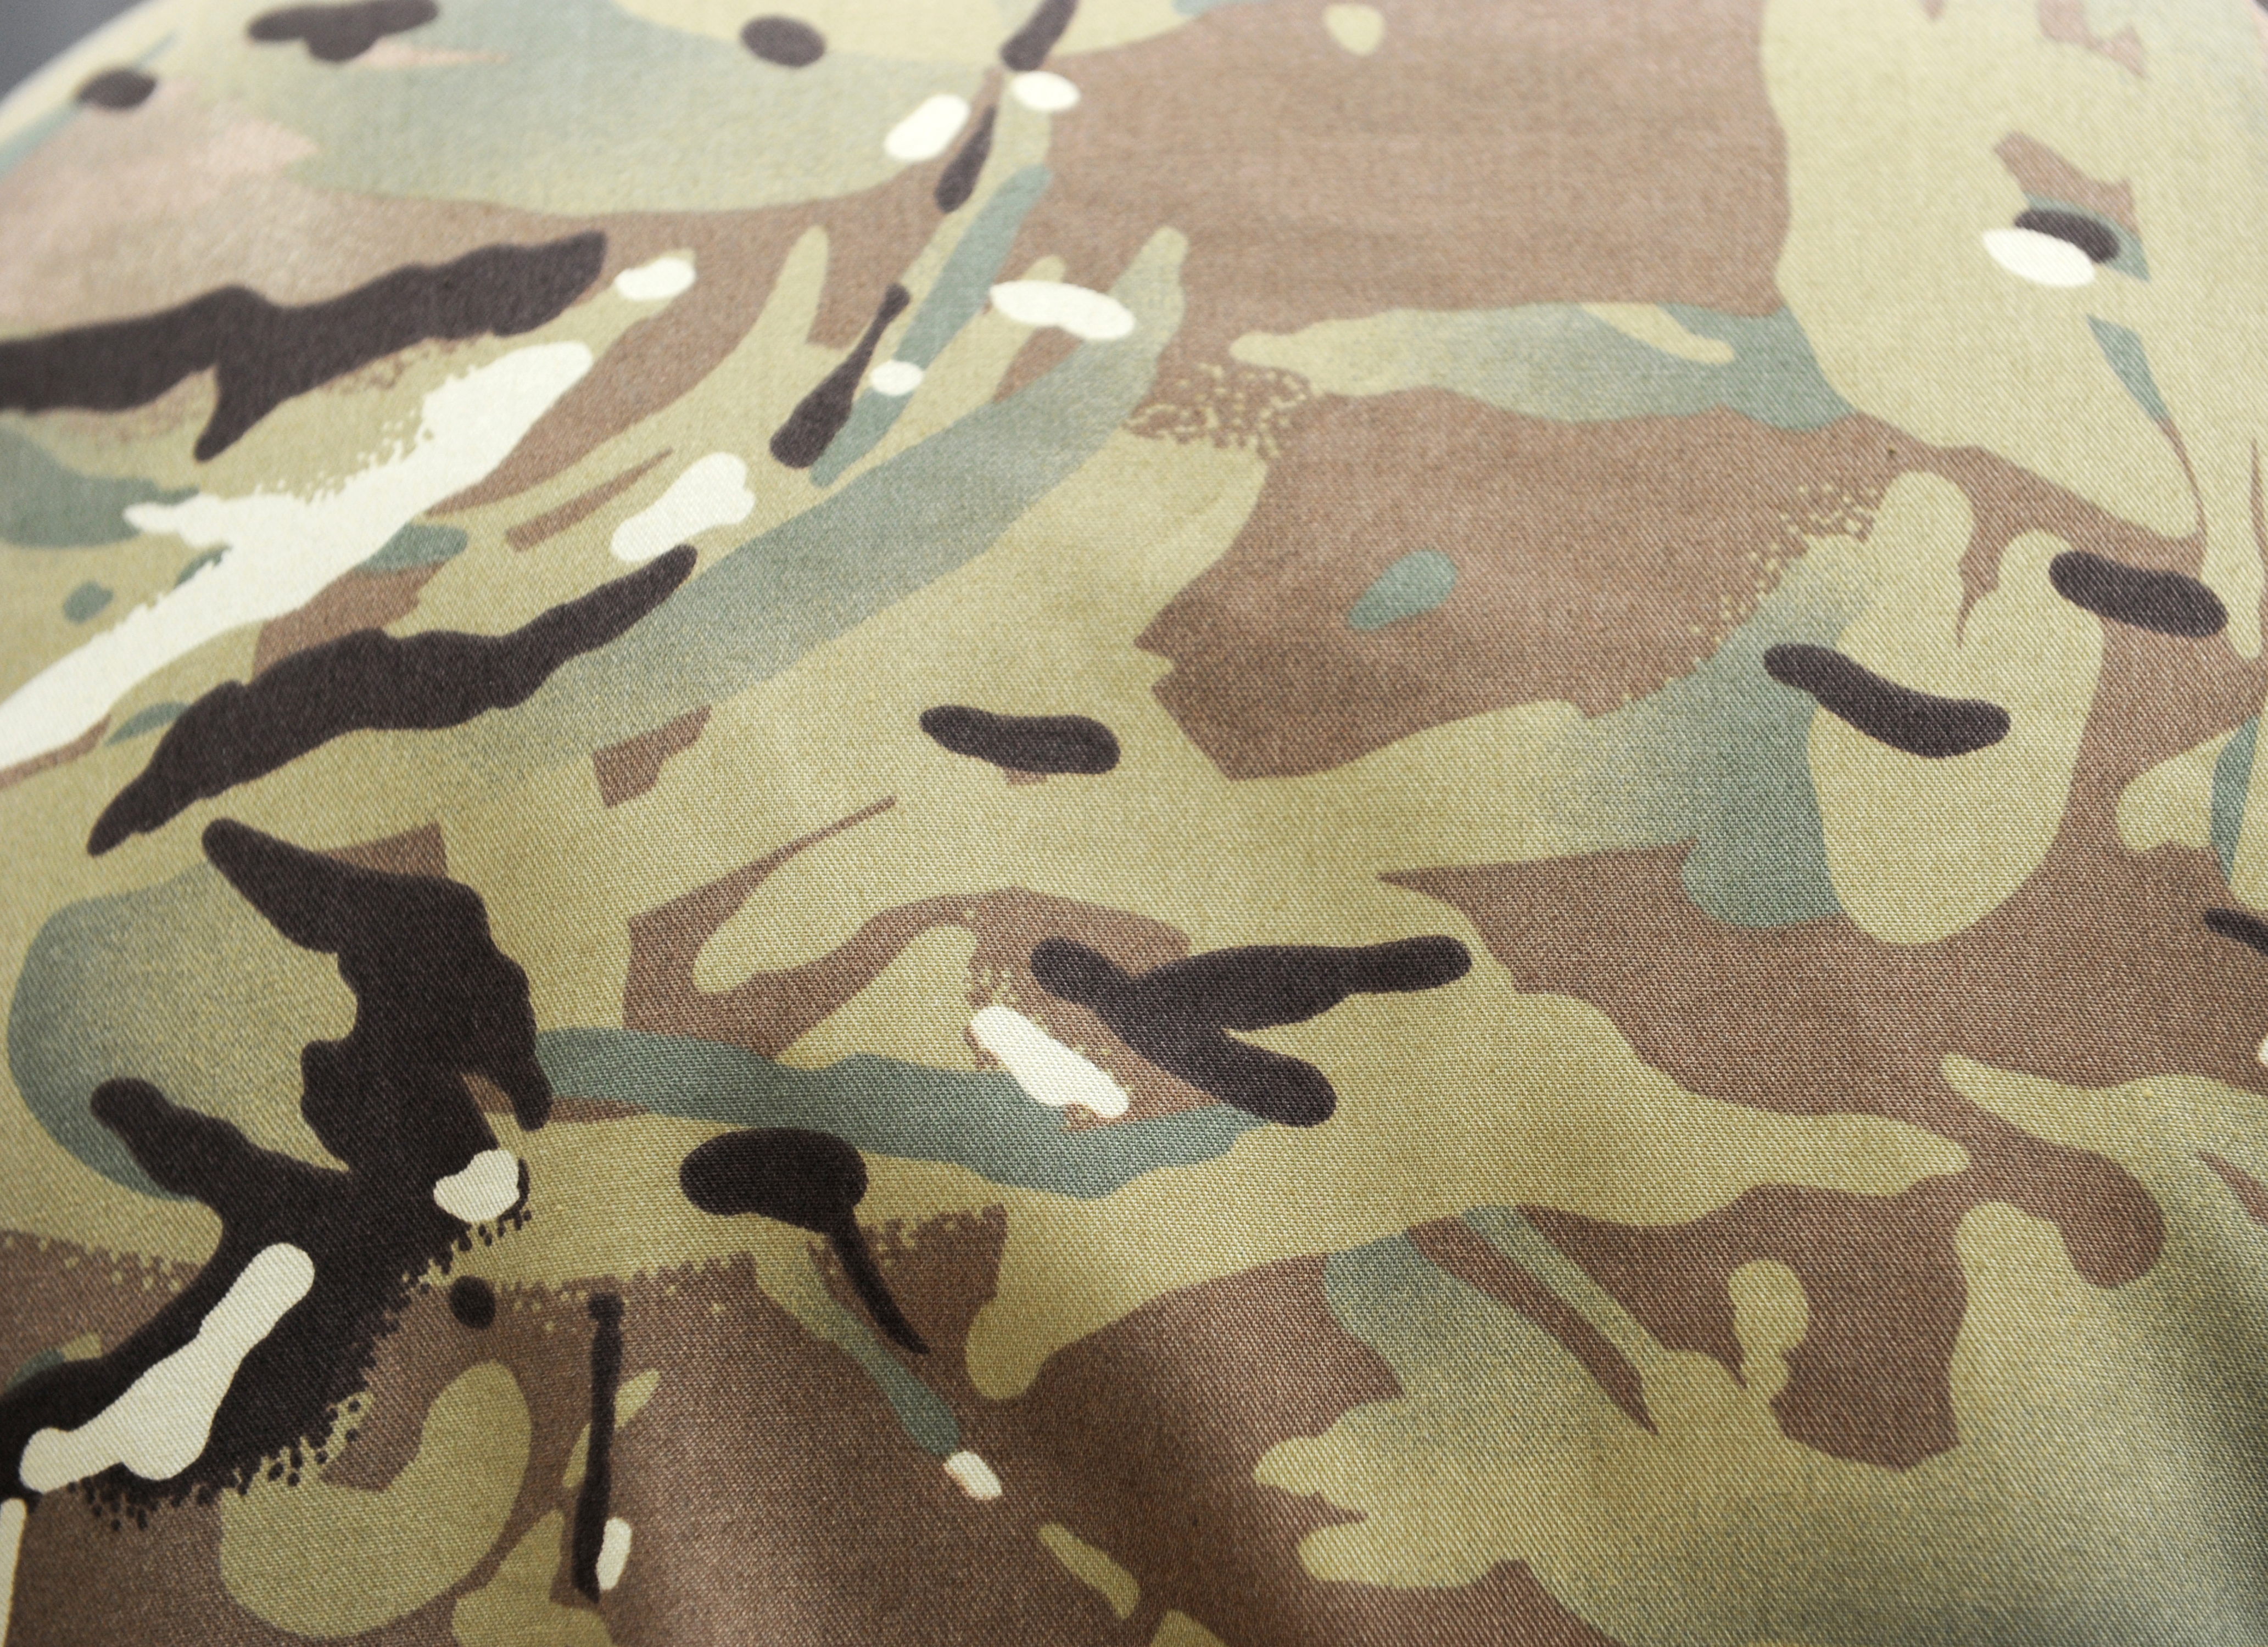 Camouflage textures for everyone!